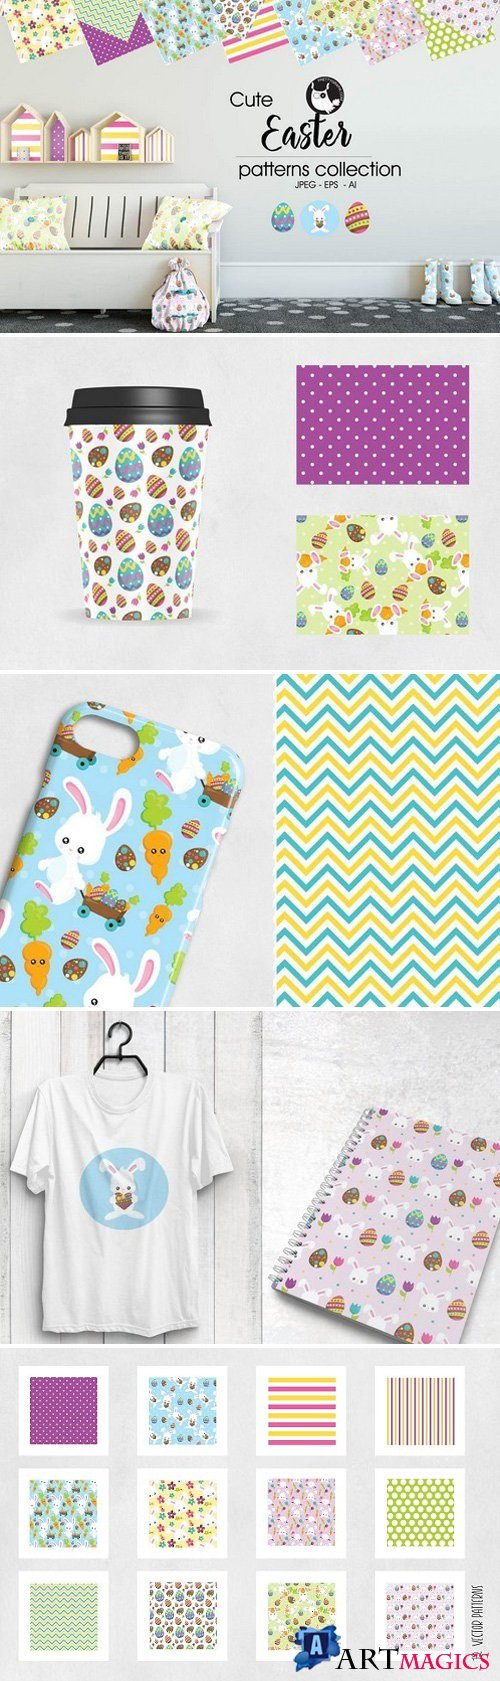 EASTER Pattern collection 2024402